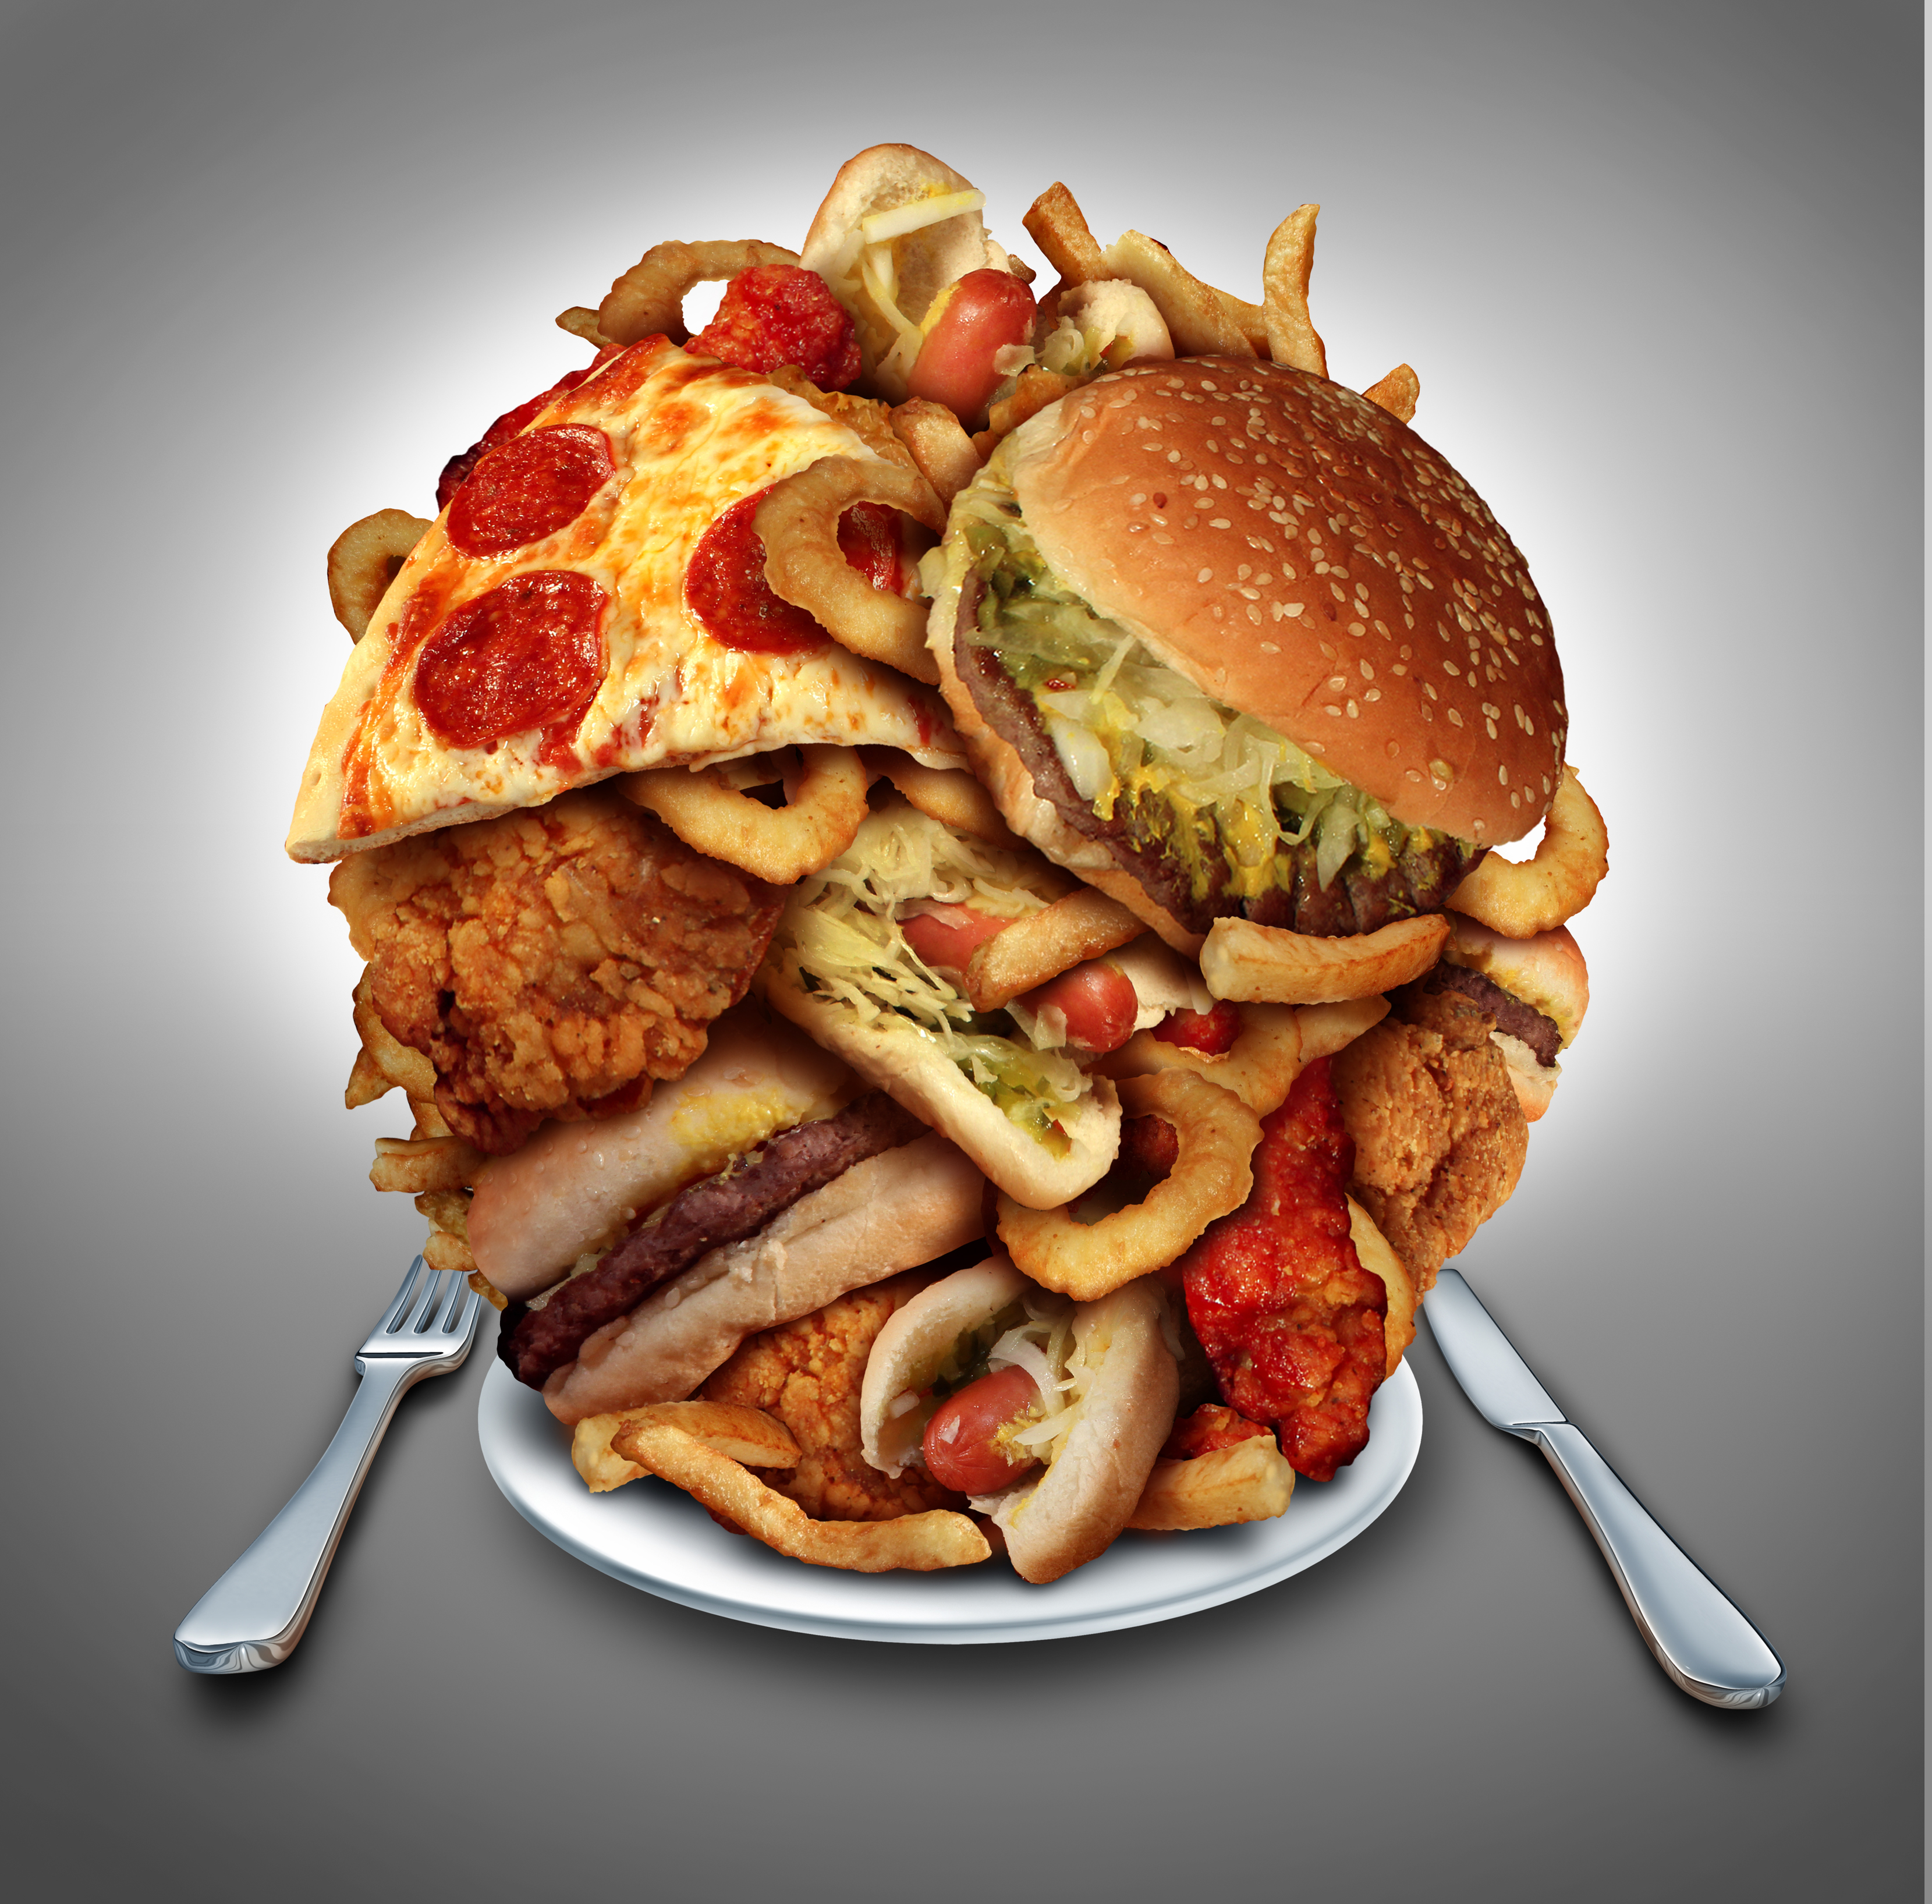 Calorie Count Reaches New Highs With Fattest Fast Food